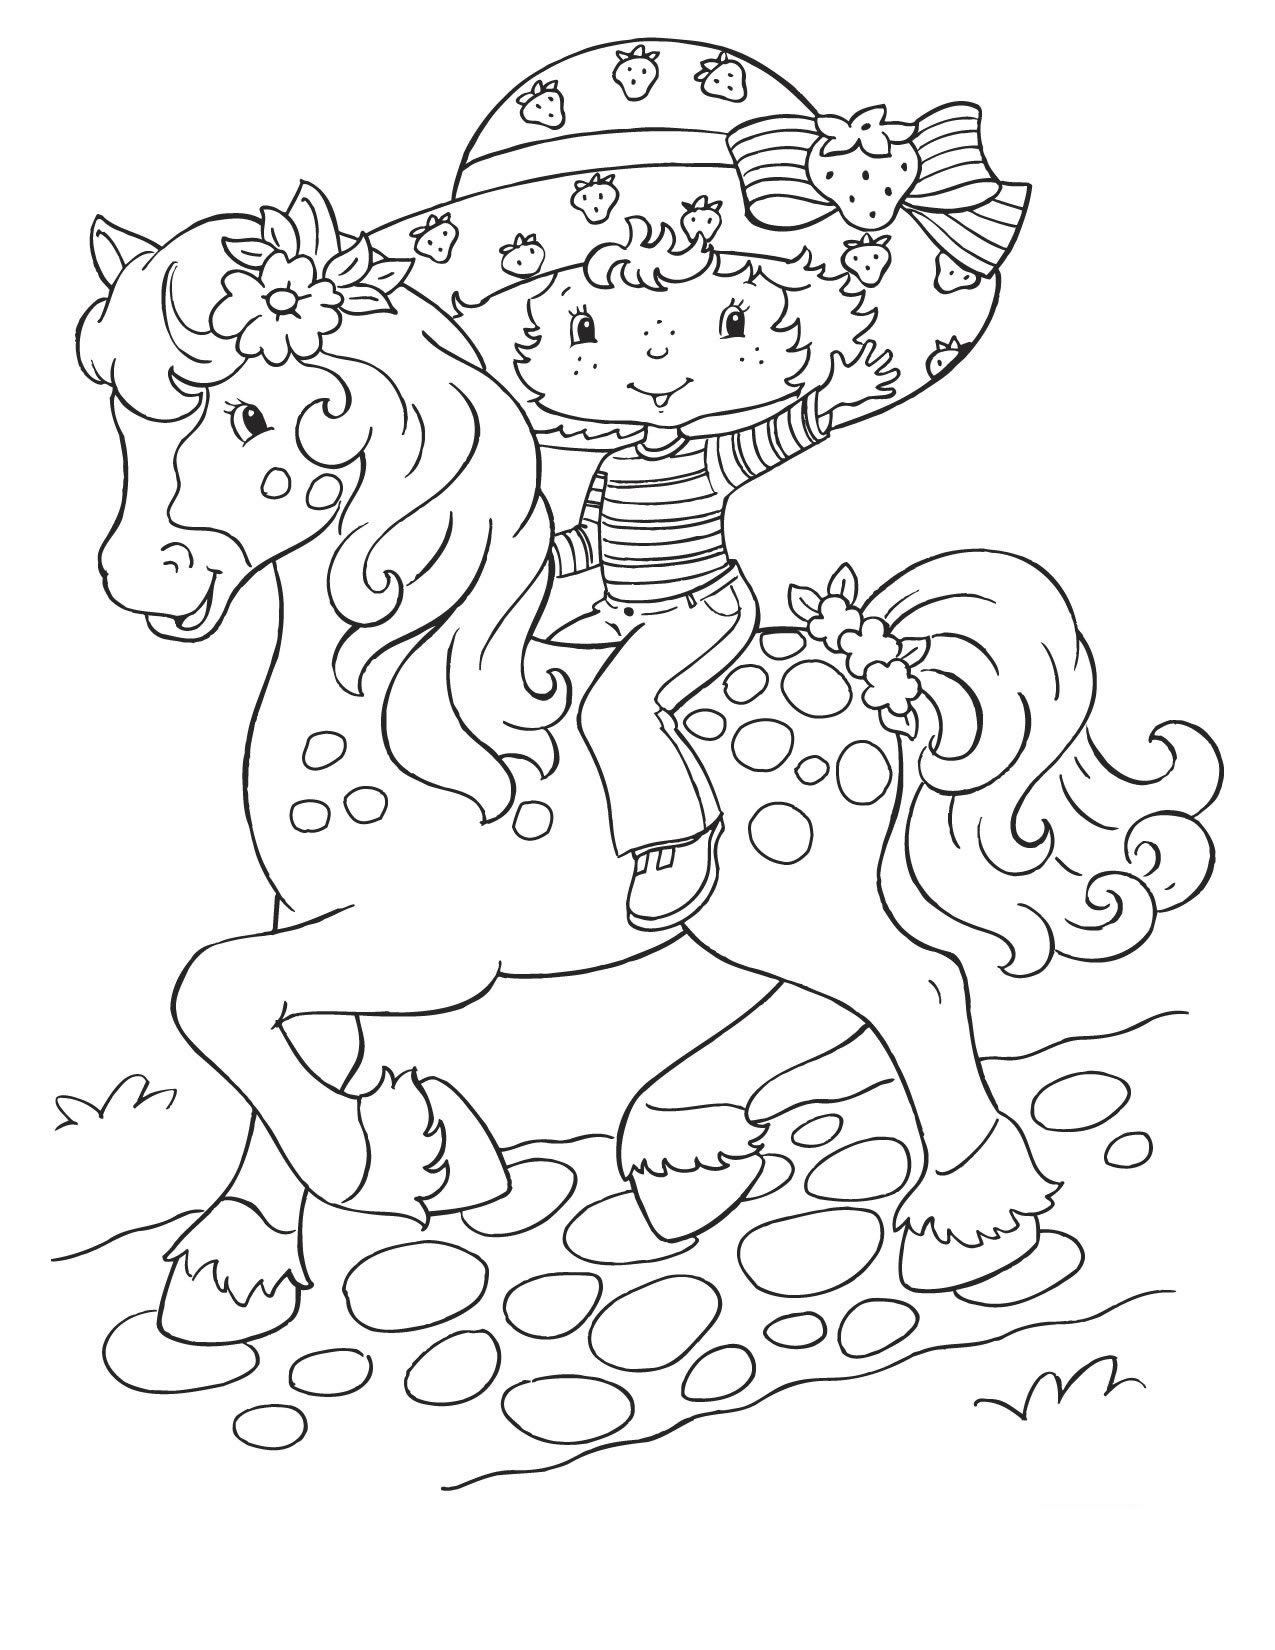 Free Coloring Pages Strawberry Shortcake Printable